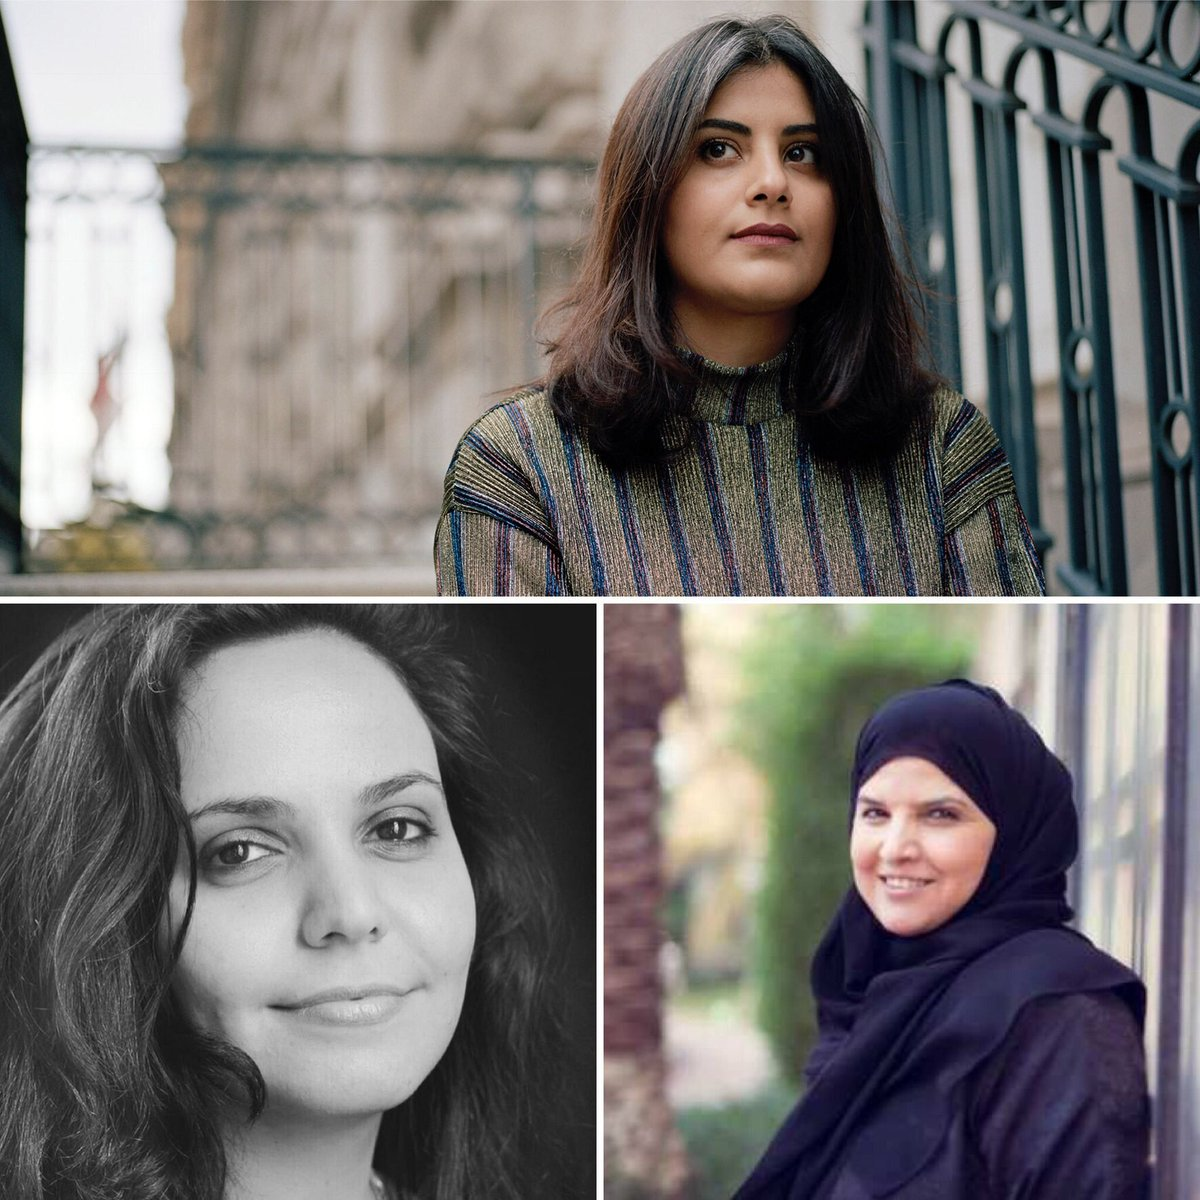 @AmnestyNow @worldincrisis1 Brave women! Hey #MbS you really scared these heros be free in your country! Pathetic! #FreeSaudiActivists right now! #WomensRightsAreHumanRights #Standup4HumanRights #WomensRights #FreedomOfSpeech